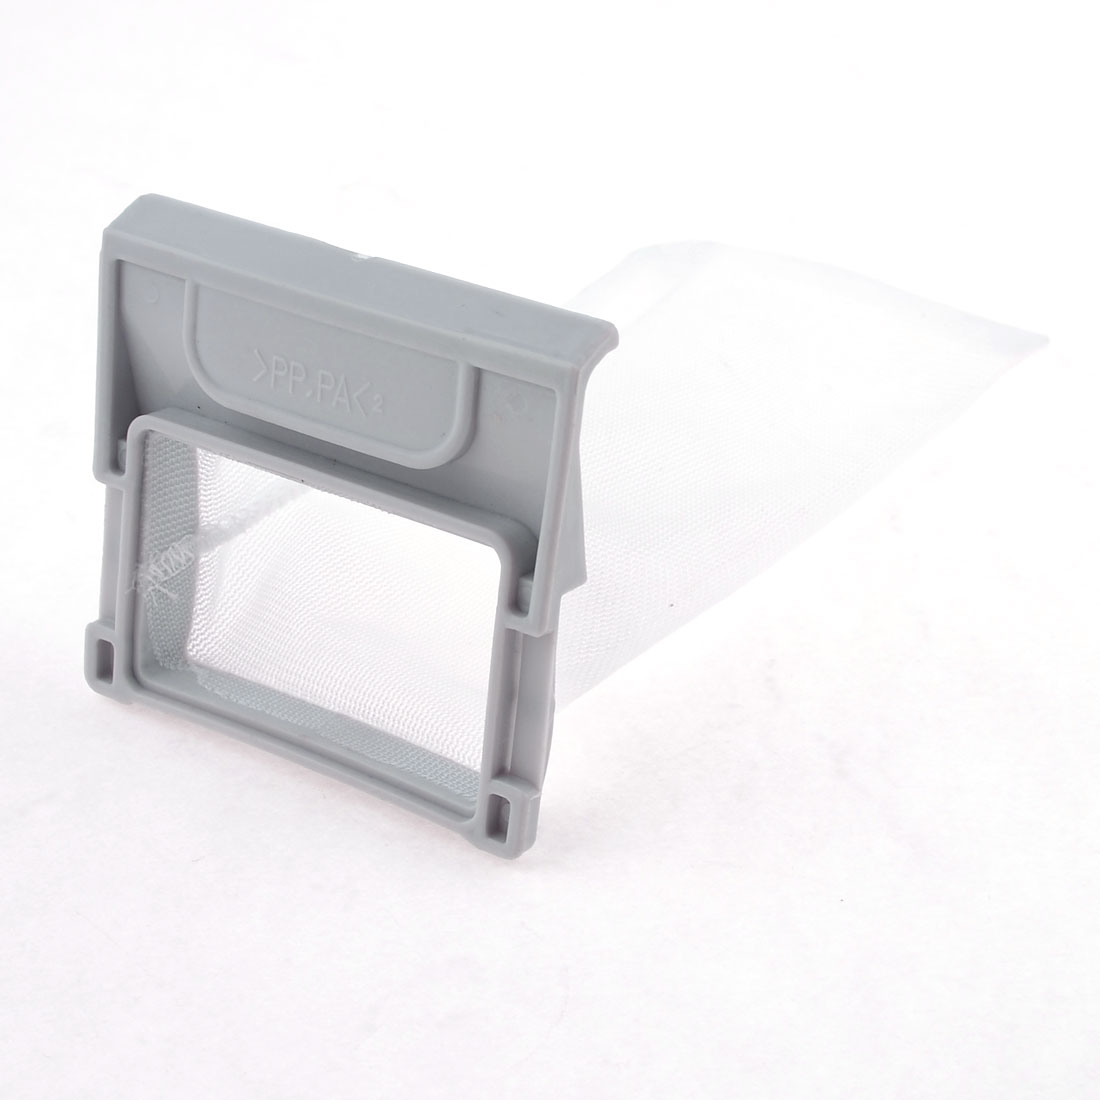 Hard Plastic Frame Filter Netty Bag for Washing Machine